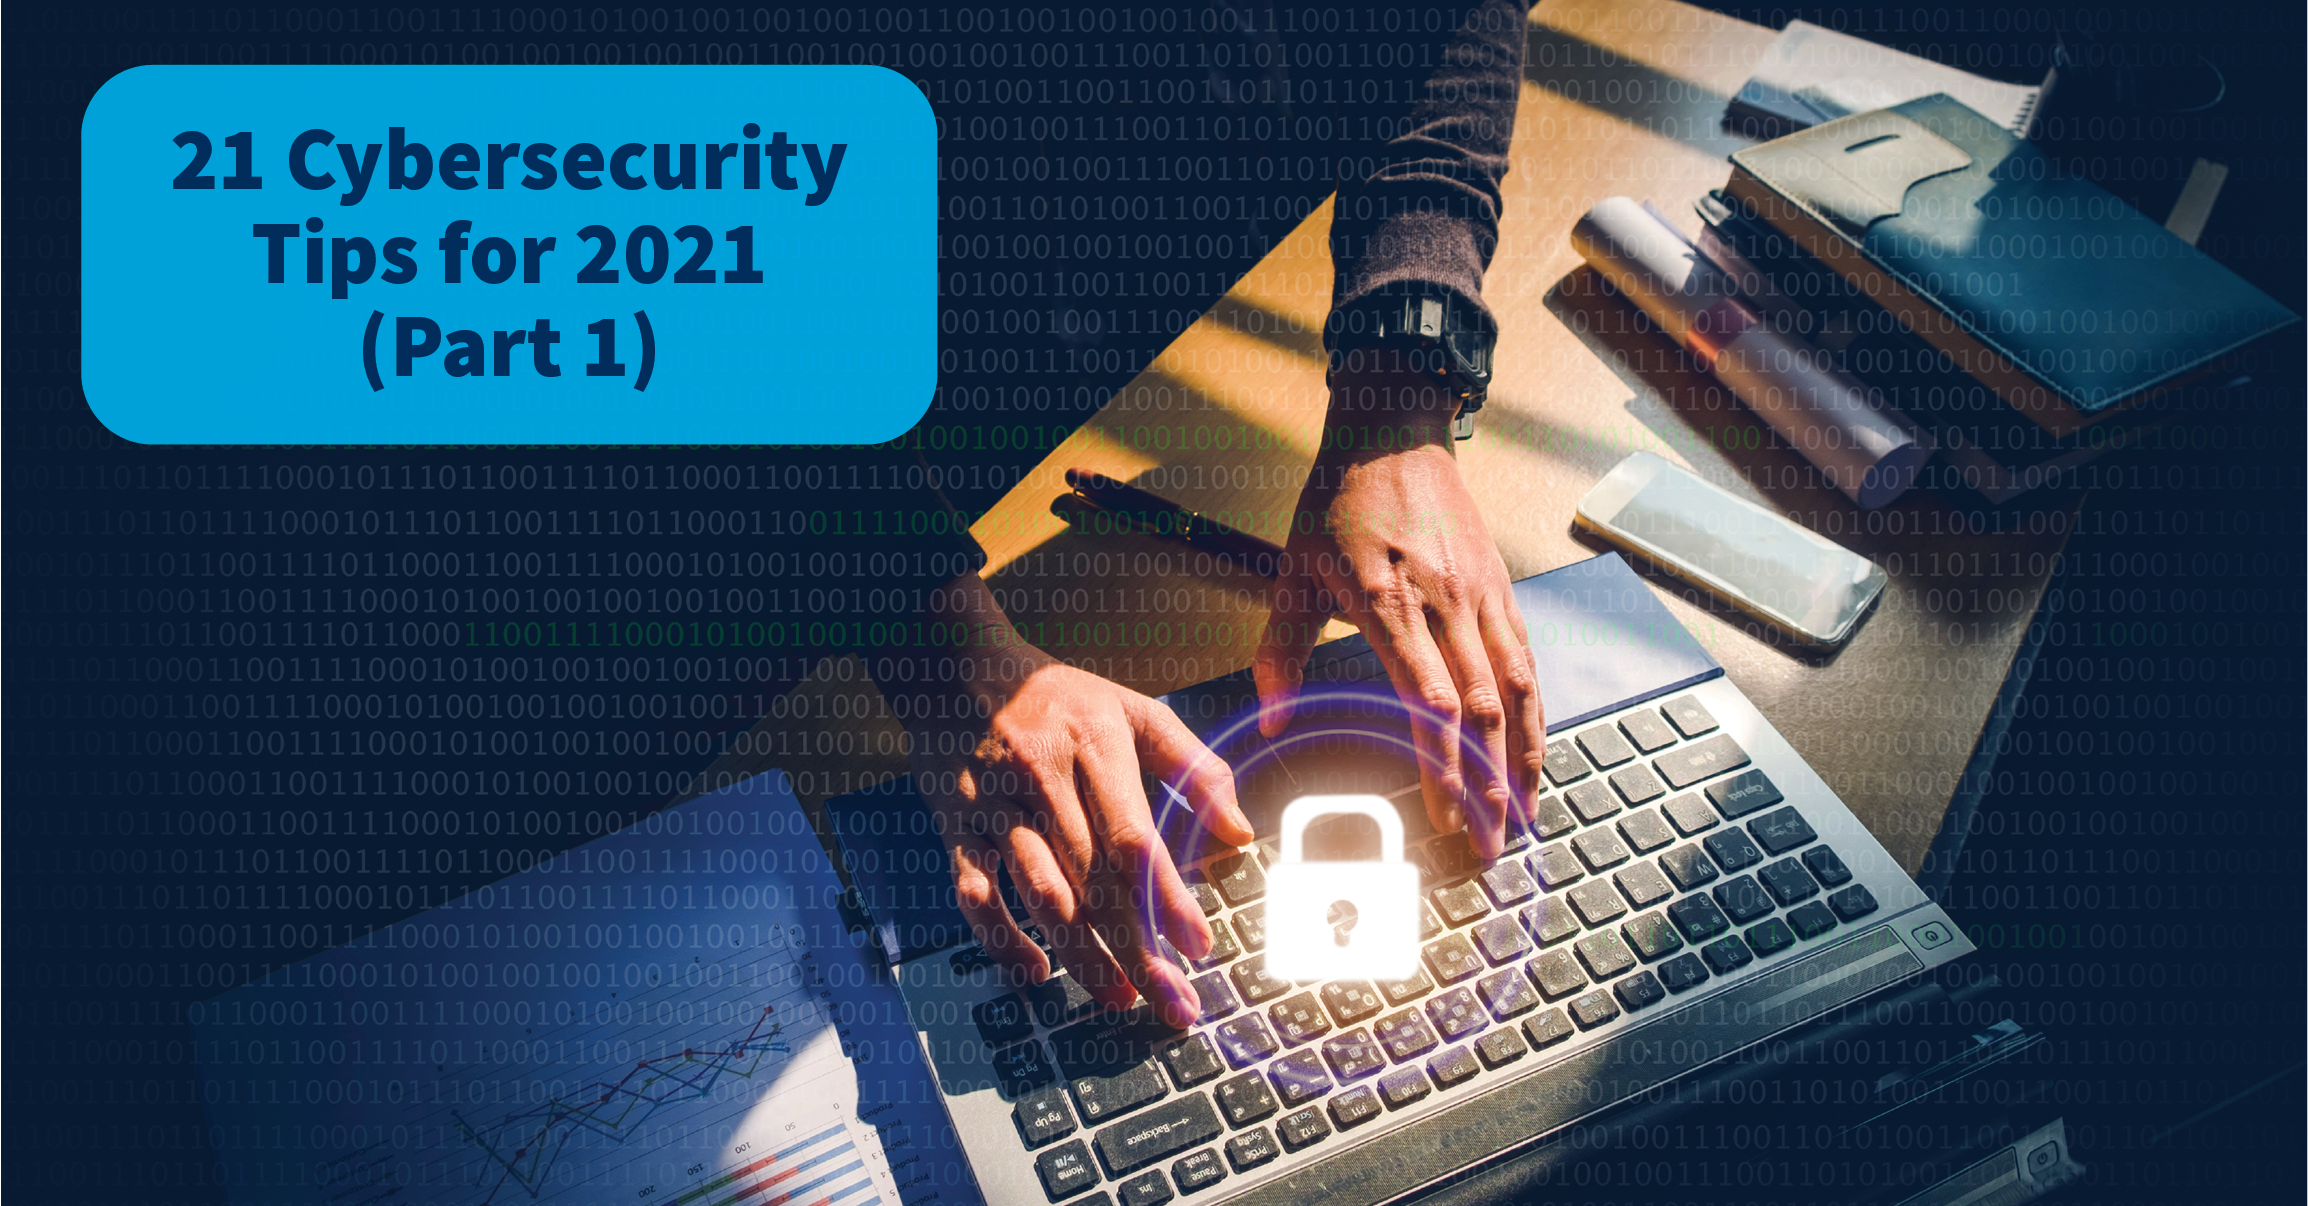 21 Cybersecurity Tips For 2021 (Part 1)